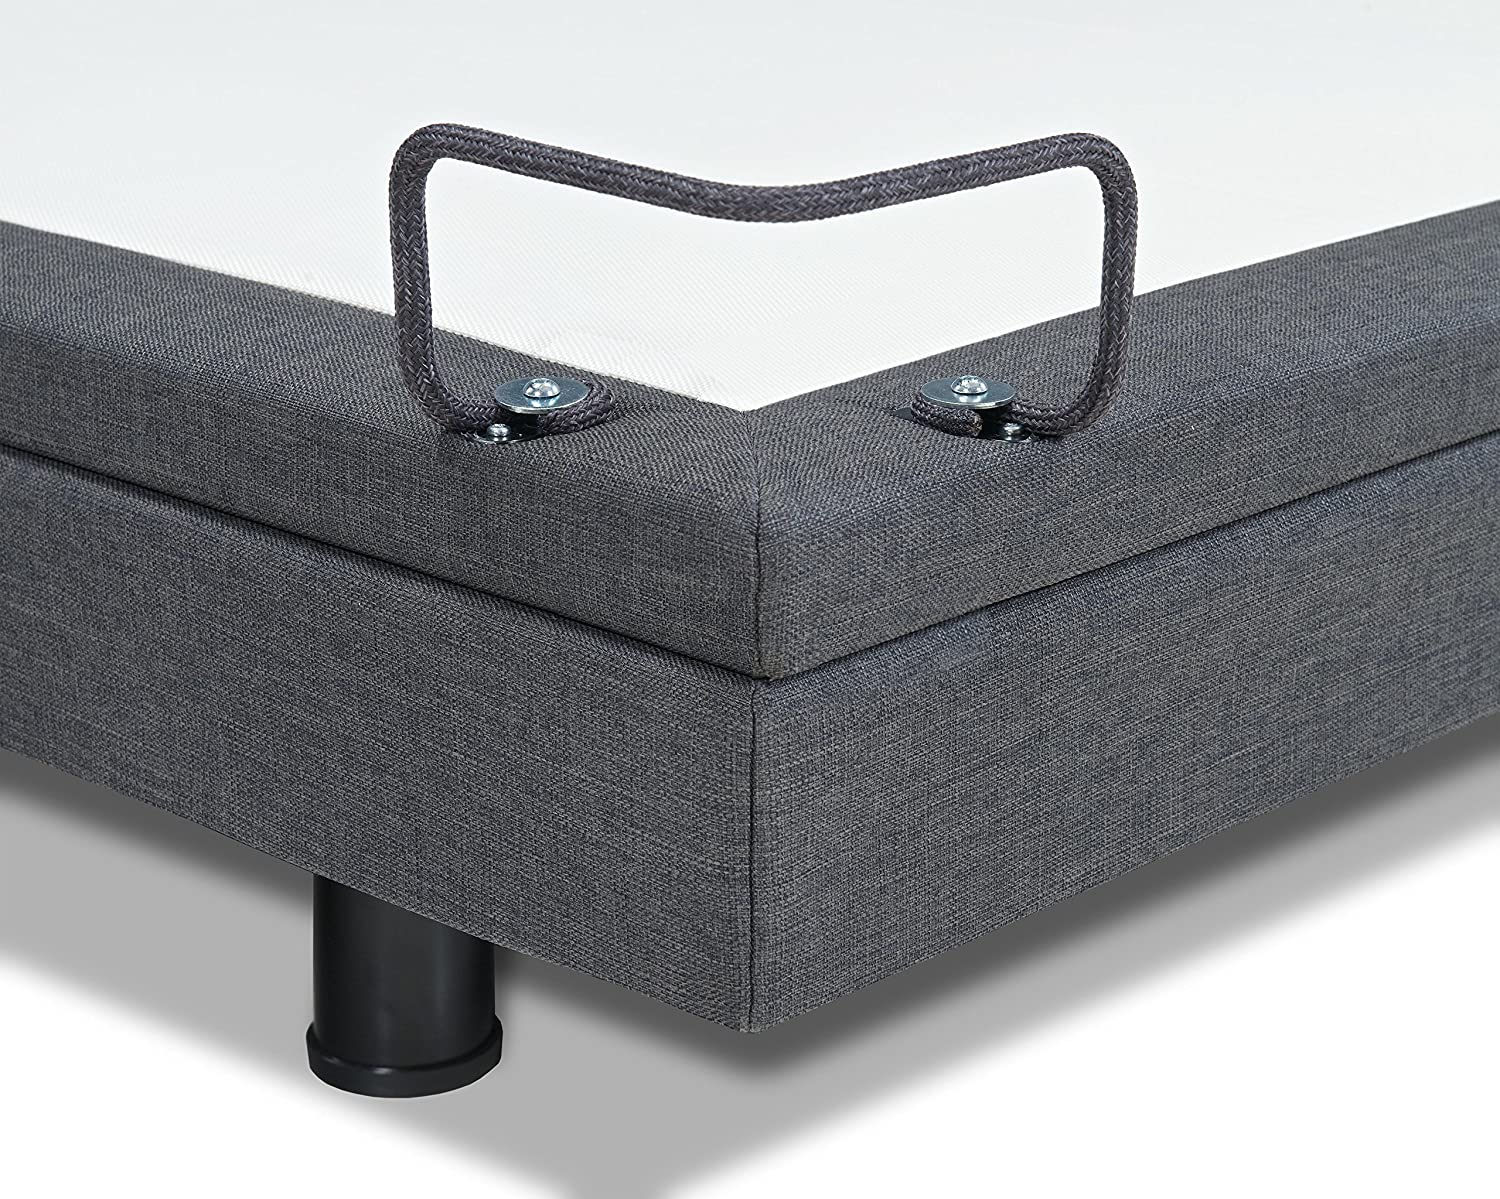 Reverie 7S Adjustable Bed From The Makers Of The Tempurpedic Ergo W Bluetooth Option Split King